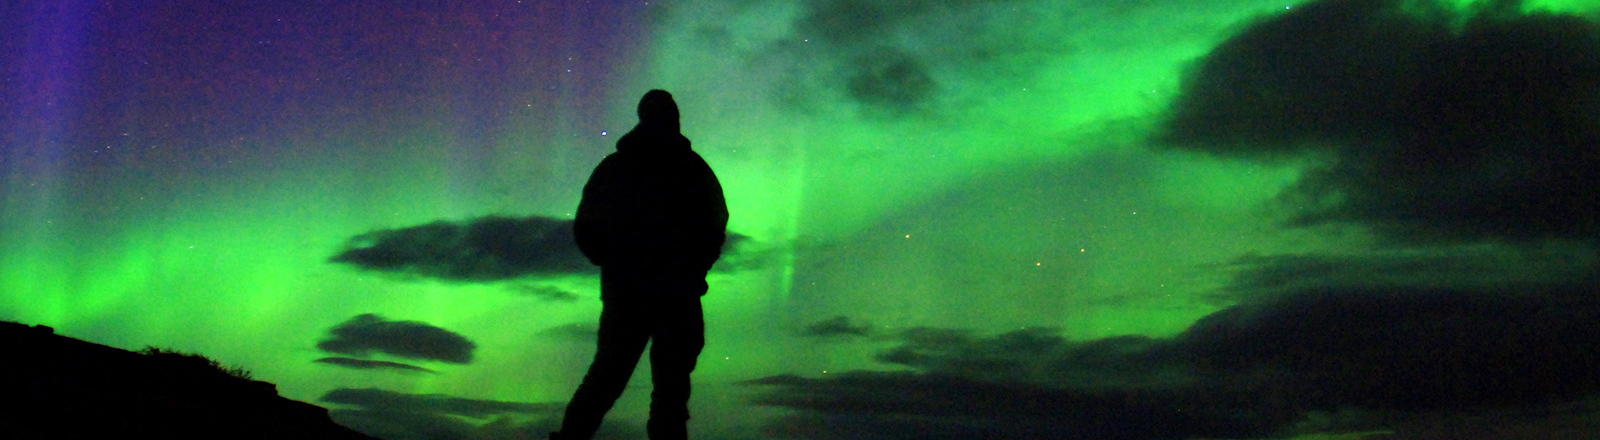 Am Porsangerfjord in der Finnmark in Nordnorwegen, rund 60 Kilometer südlich des Nordkaps nahe des Ortes Repvag, beobachtet in der Nacht am 14.09.2005 ein Mann das farbenprächtige Schauspiel eines Polarlichts das durch Wolkenlücken scheint